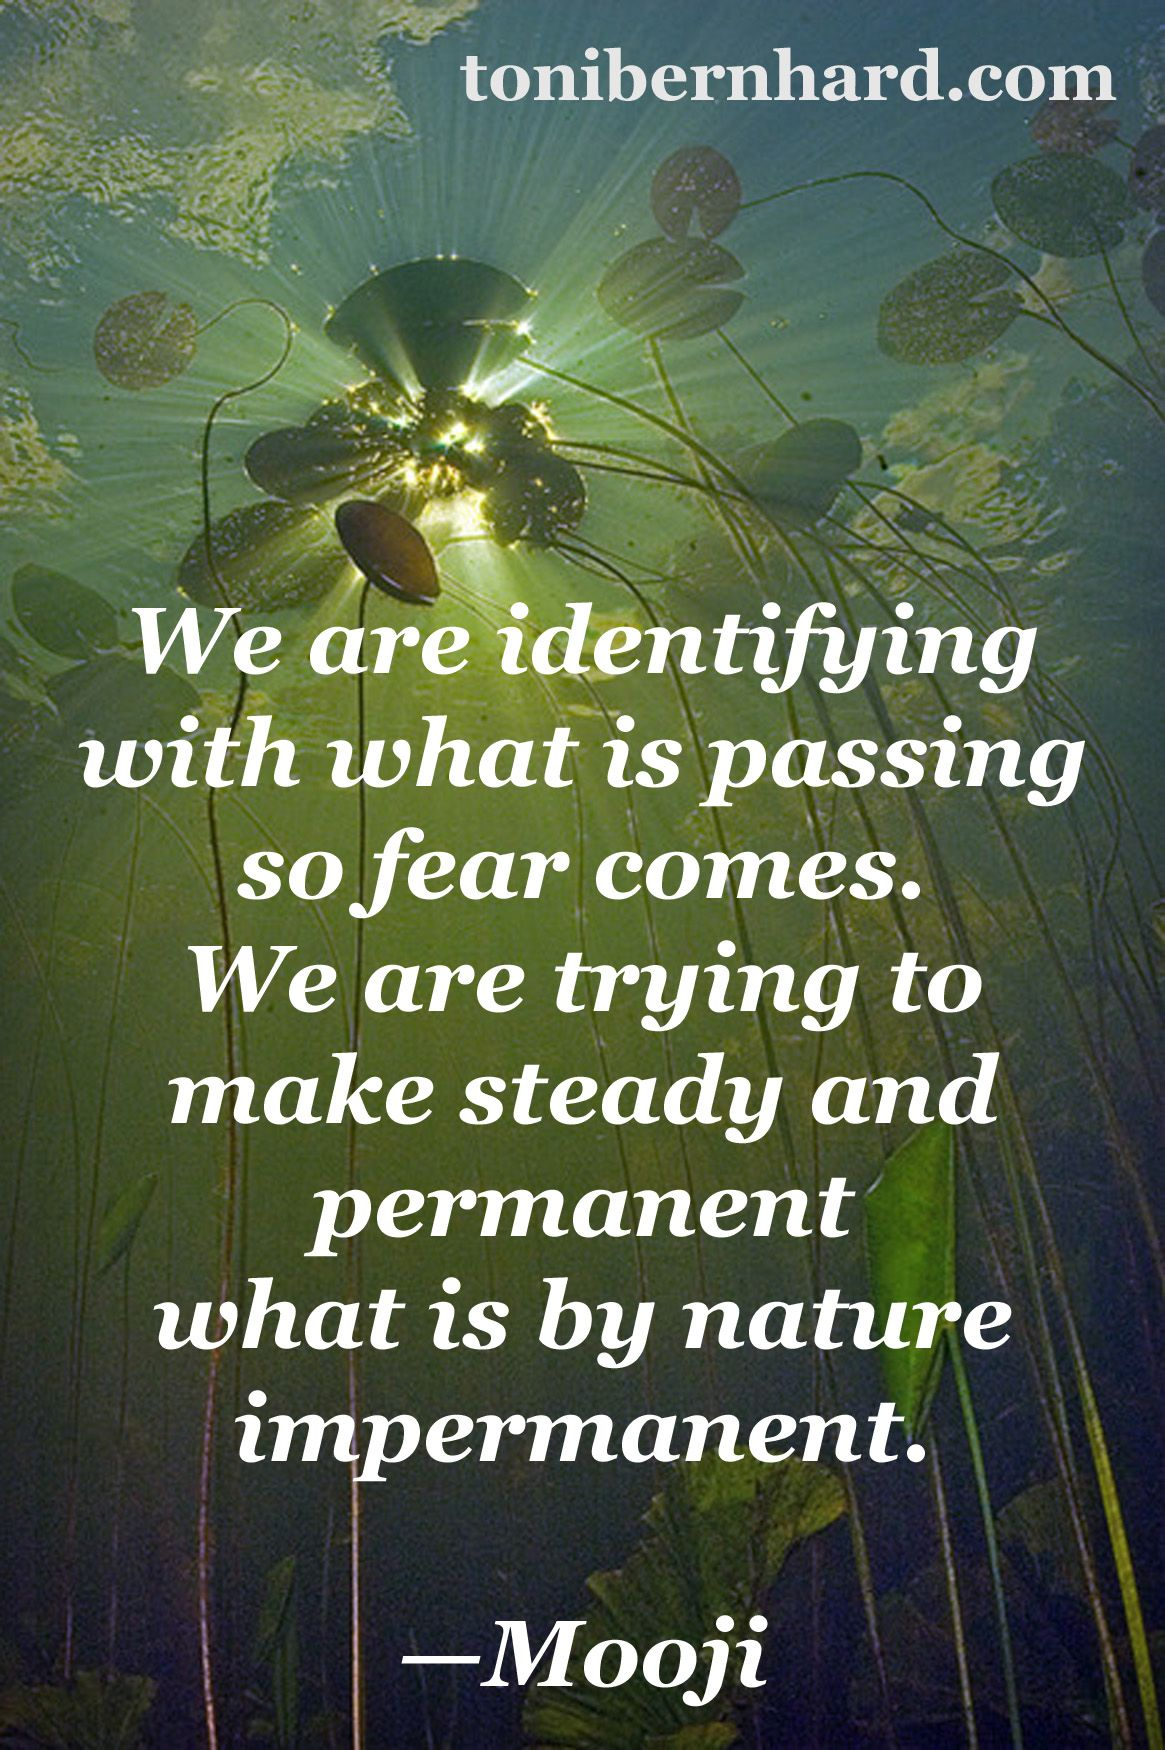 Spiritual Life Quotes And Sayings Identifying With What Is Impermanent Brings Suffering Buddhist